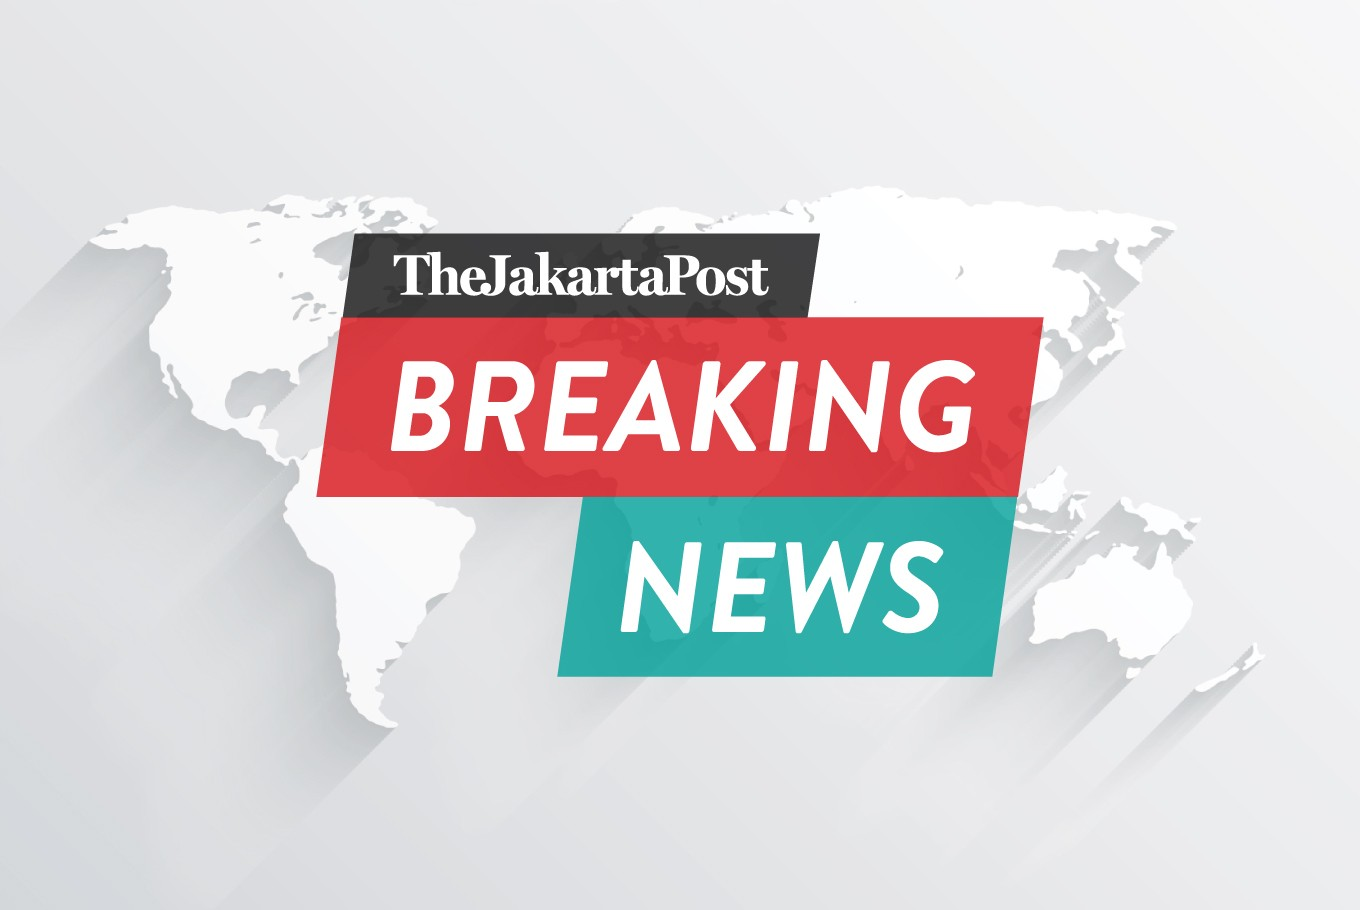 BREAKING: Jokowi announces 12 new deputy ministers to assist Cabinet